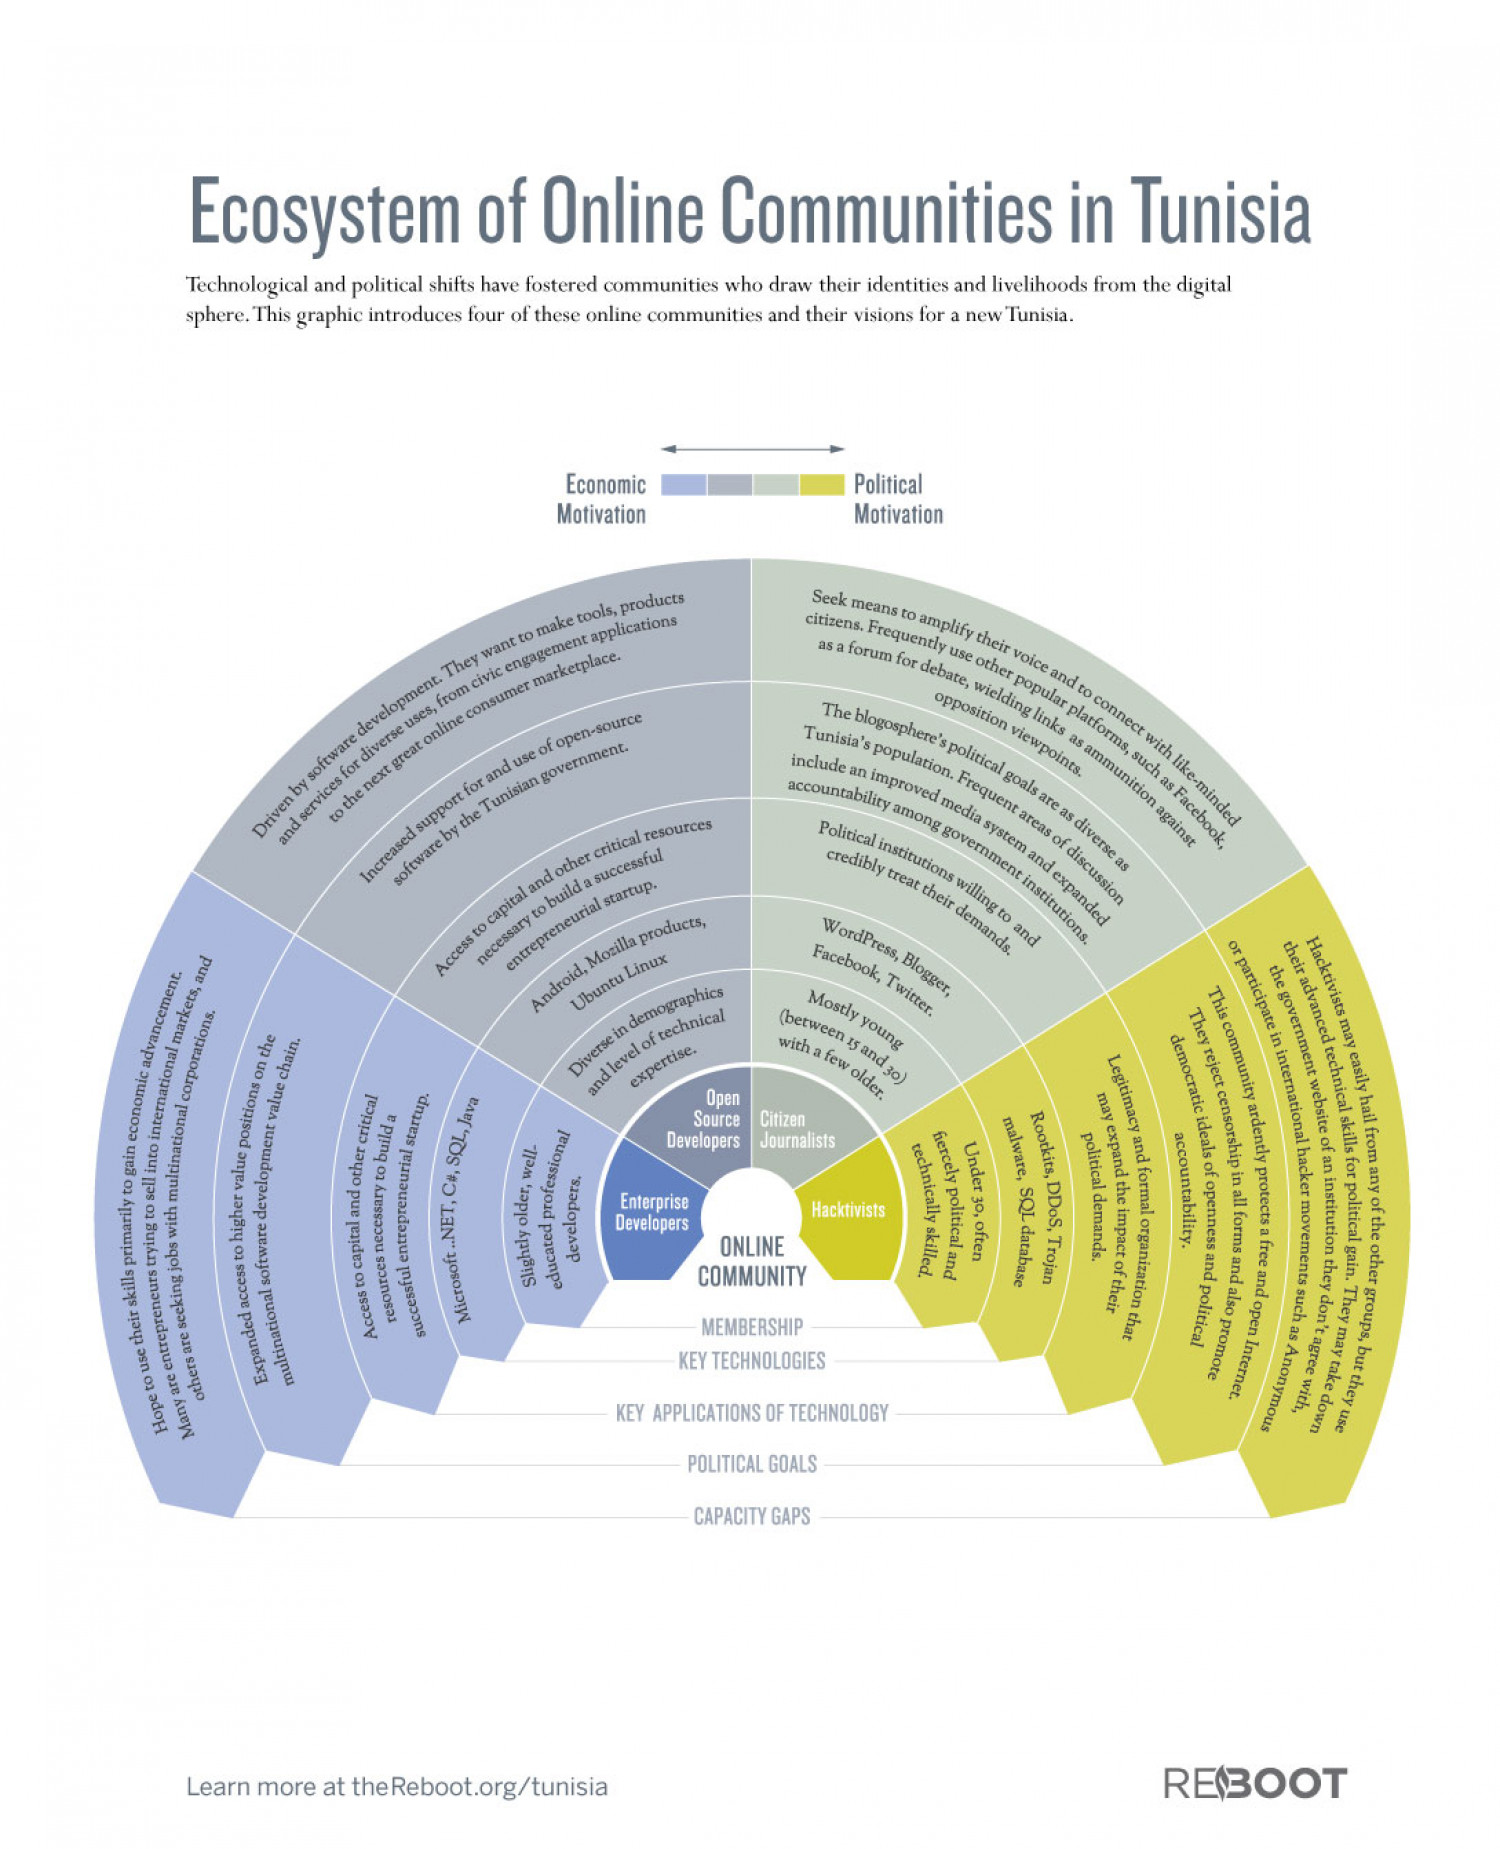 Ecosystem of Online Communities in Tunisia Infographic